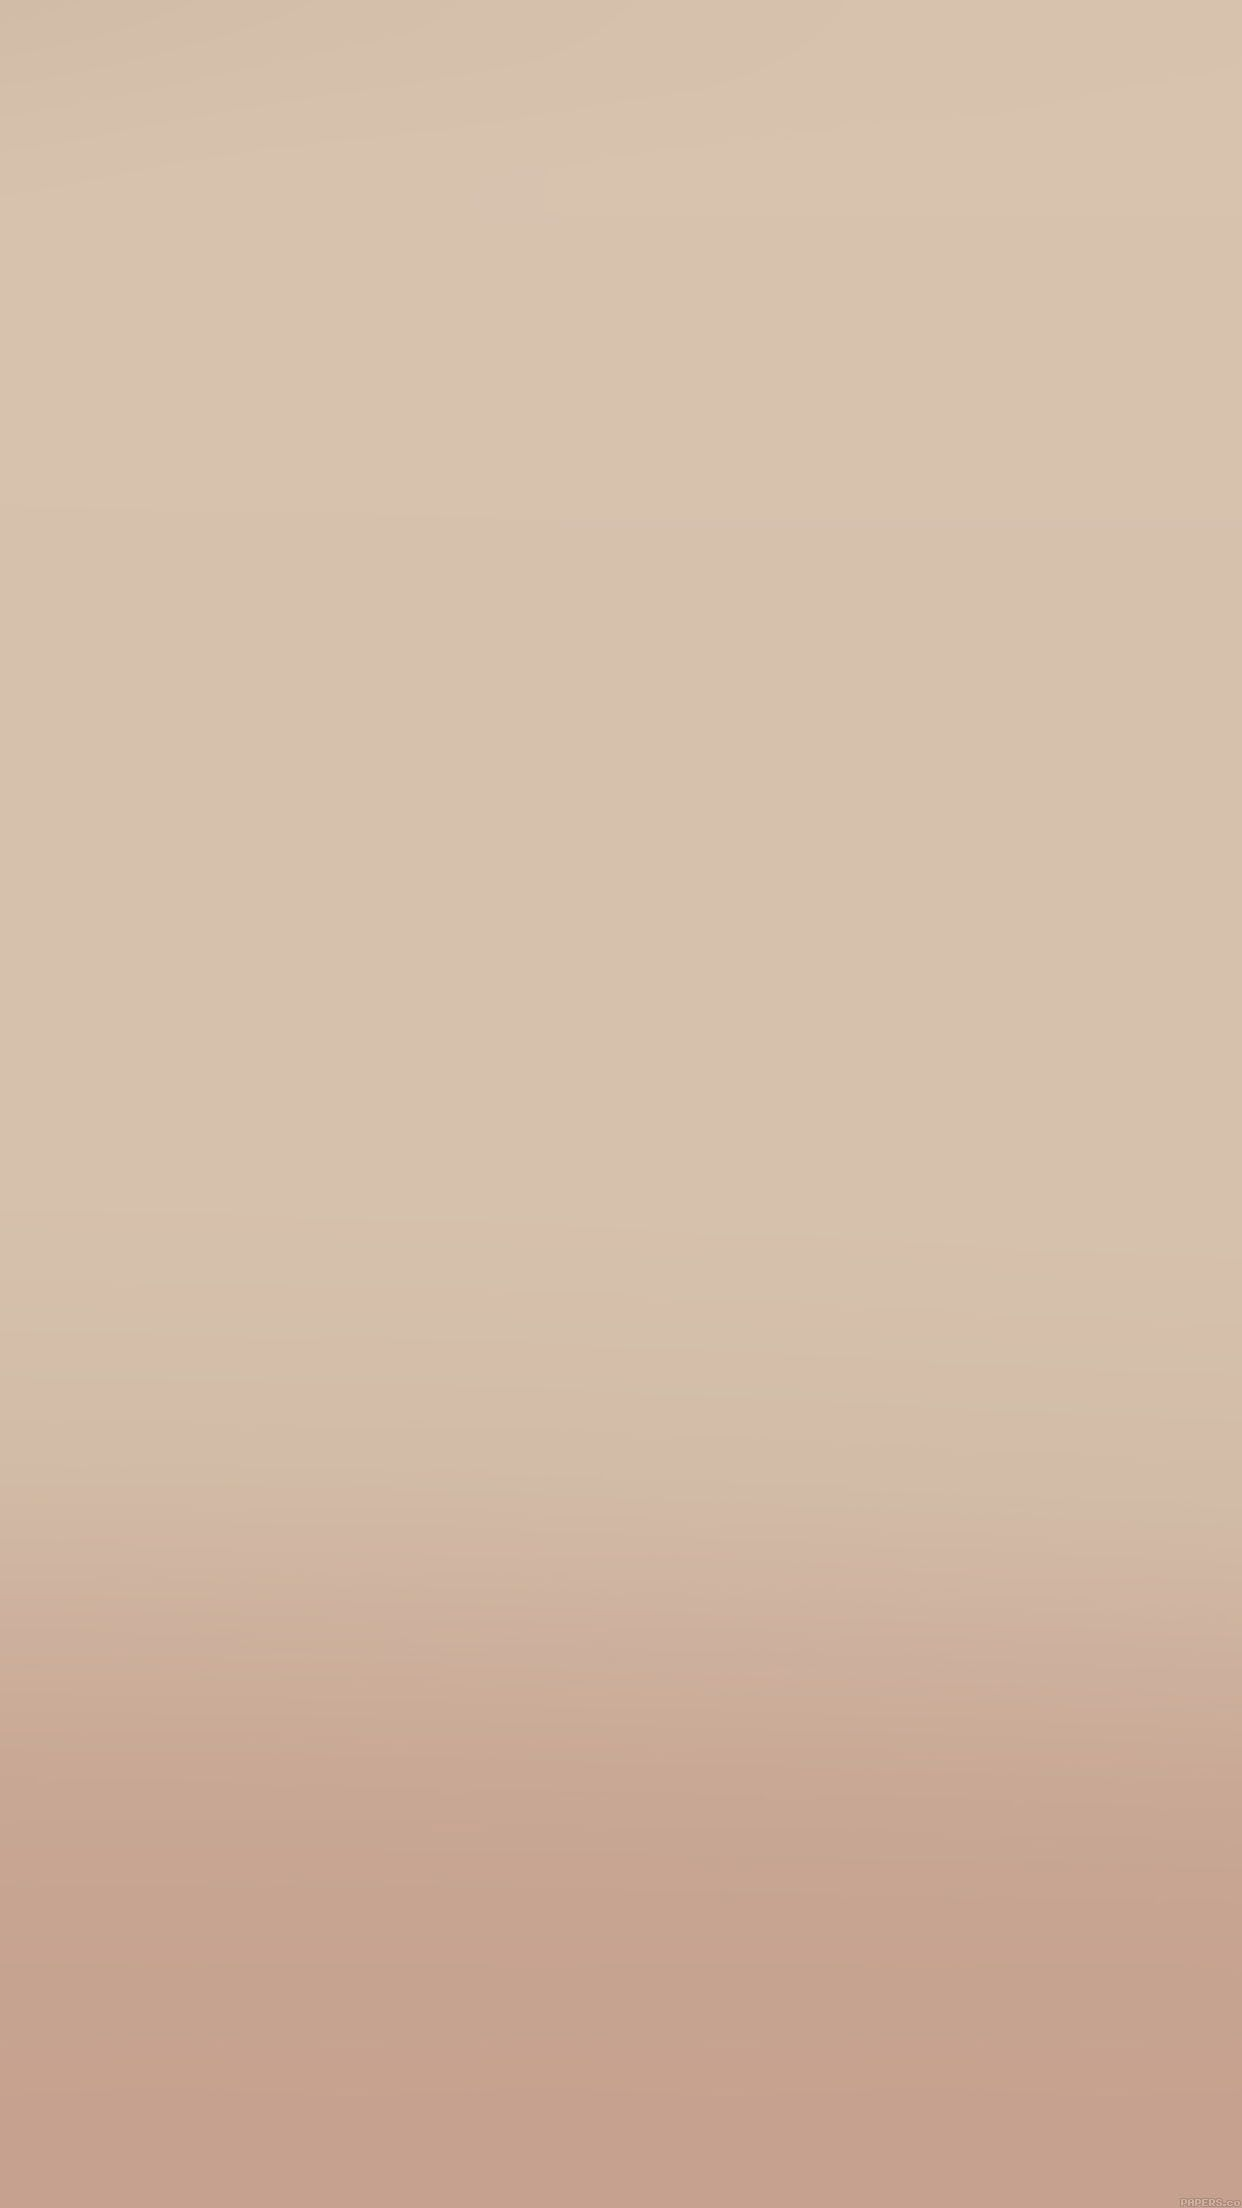 Pastel Brown Wallpapers Top Free Pastel Brown Backgrounds Wallpaperaccess